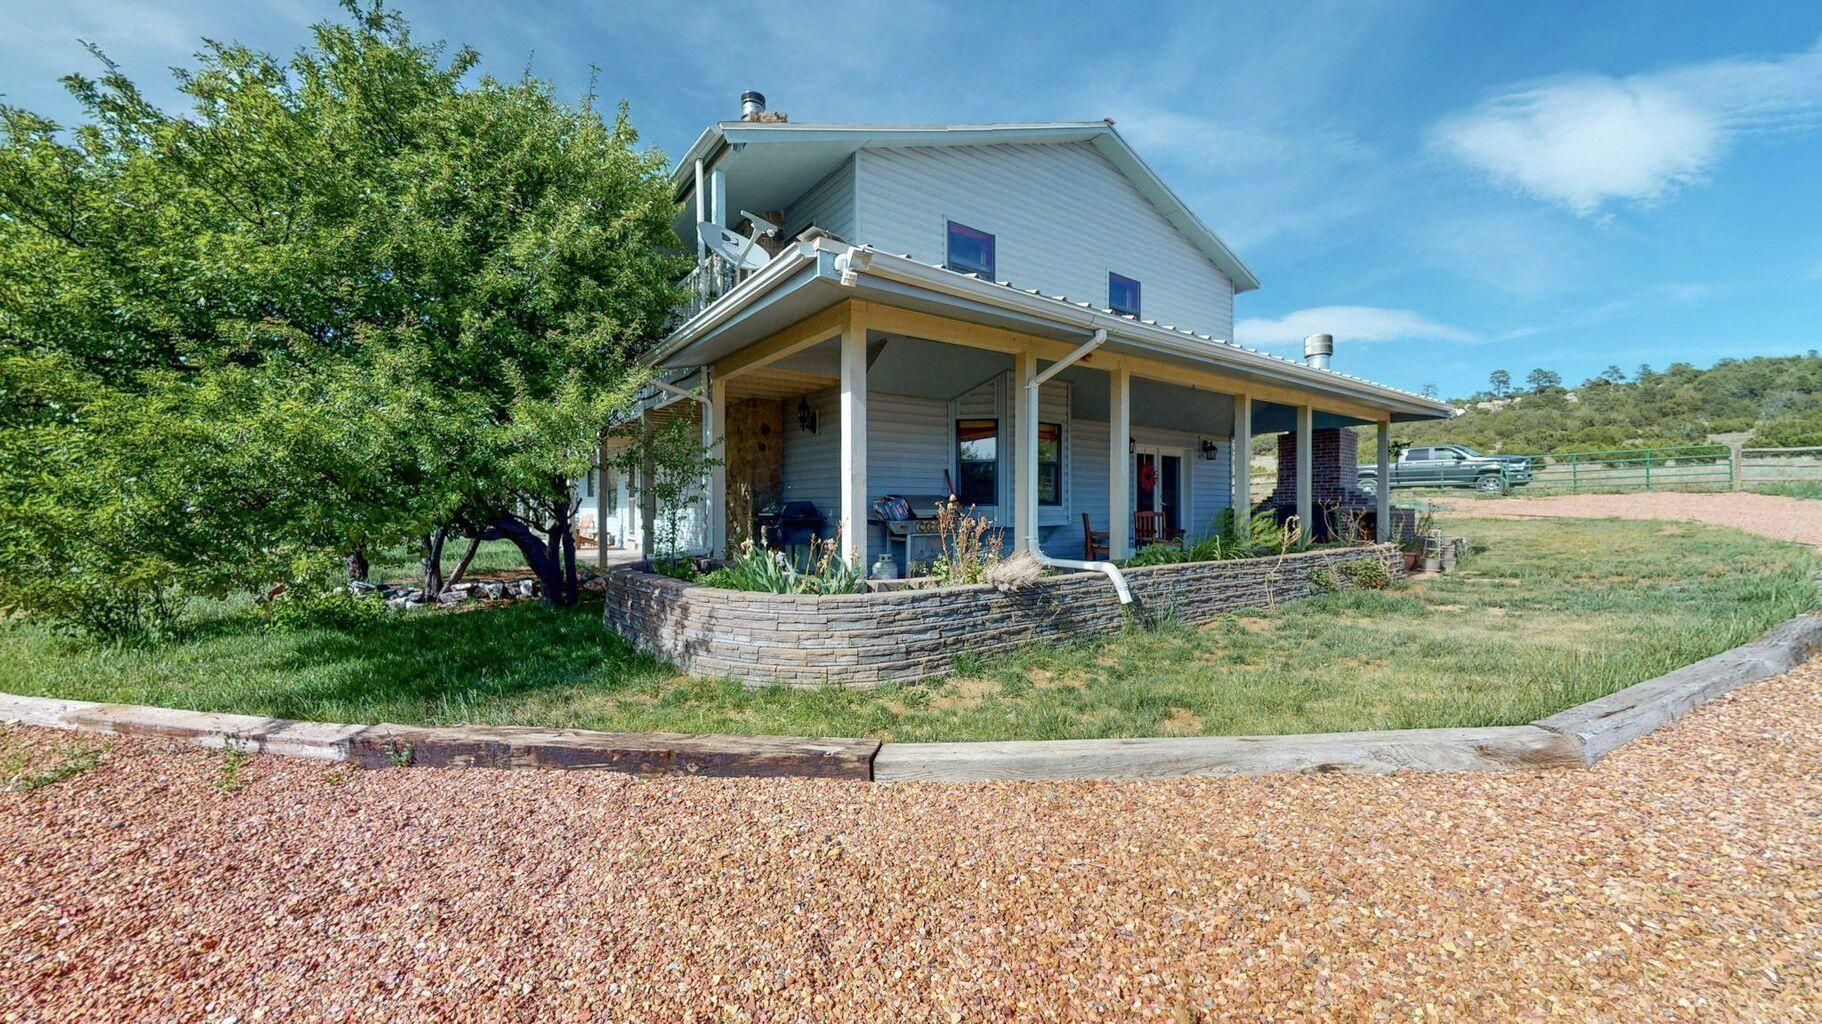 Only 20 minutes from NE ABQ busy streets, a haven awaits. Welcome to this beautiful 2-story home with views, completely fenced horse property, partially bordered by fruit trees, all sitting on 2 acres. This quiet 3100+ sqft home features a wrap-around covered porch, an open concept main floor, 3 wood burning fireplaces and formal dining area. 2 floor features large master bedroom with walk-in closets - walk out onto the full-length cover balcony with endless views, perfect for starting or ending the day. Sits on a dead end street so traffic does not run through. One car garage attached to main house and 2 car garage attached to workshop. Workshop, OR see it as a blank slate, is propane ready! Features sink, cook-top propane stove, wood burning stove and 1/2 bath. Estimated at 1074 sqft.